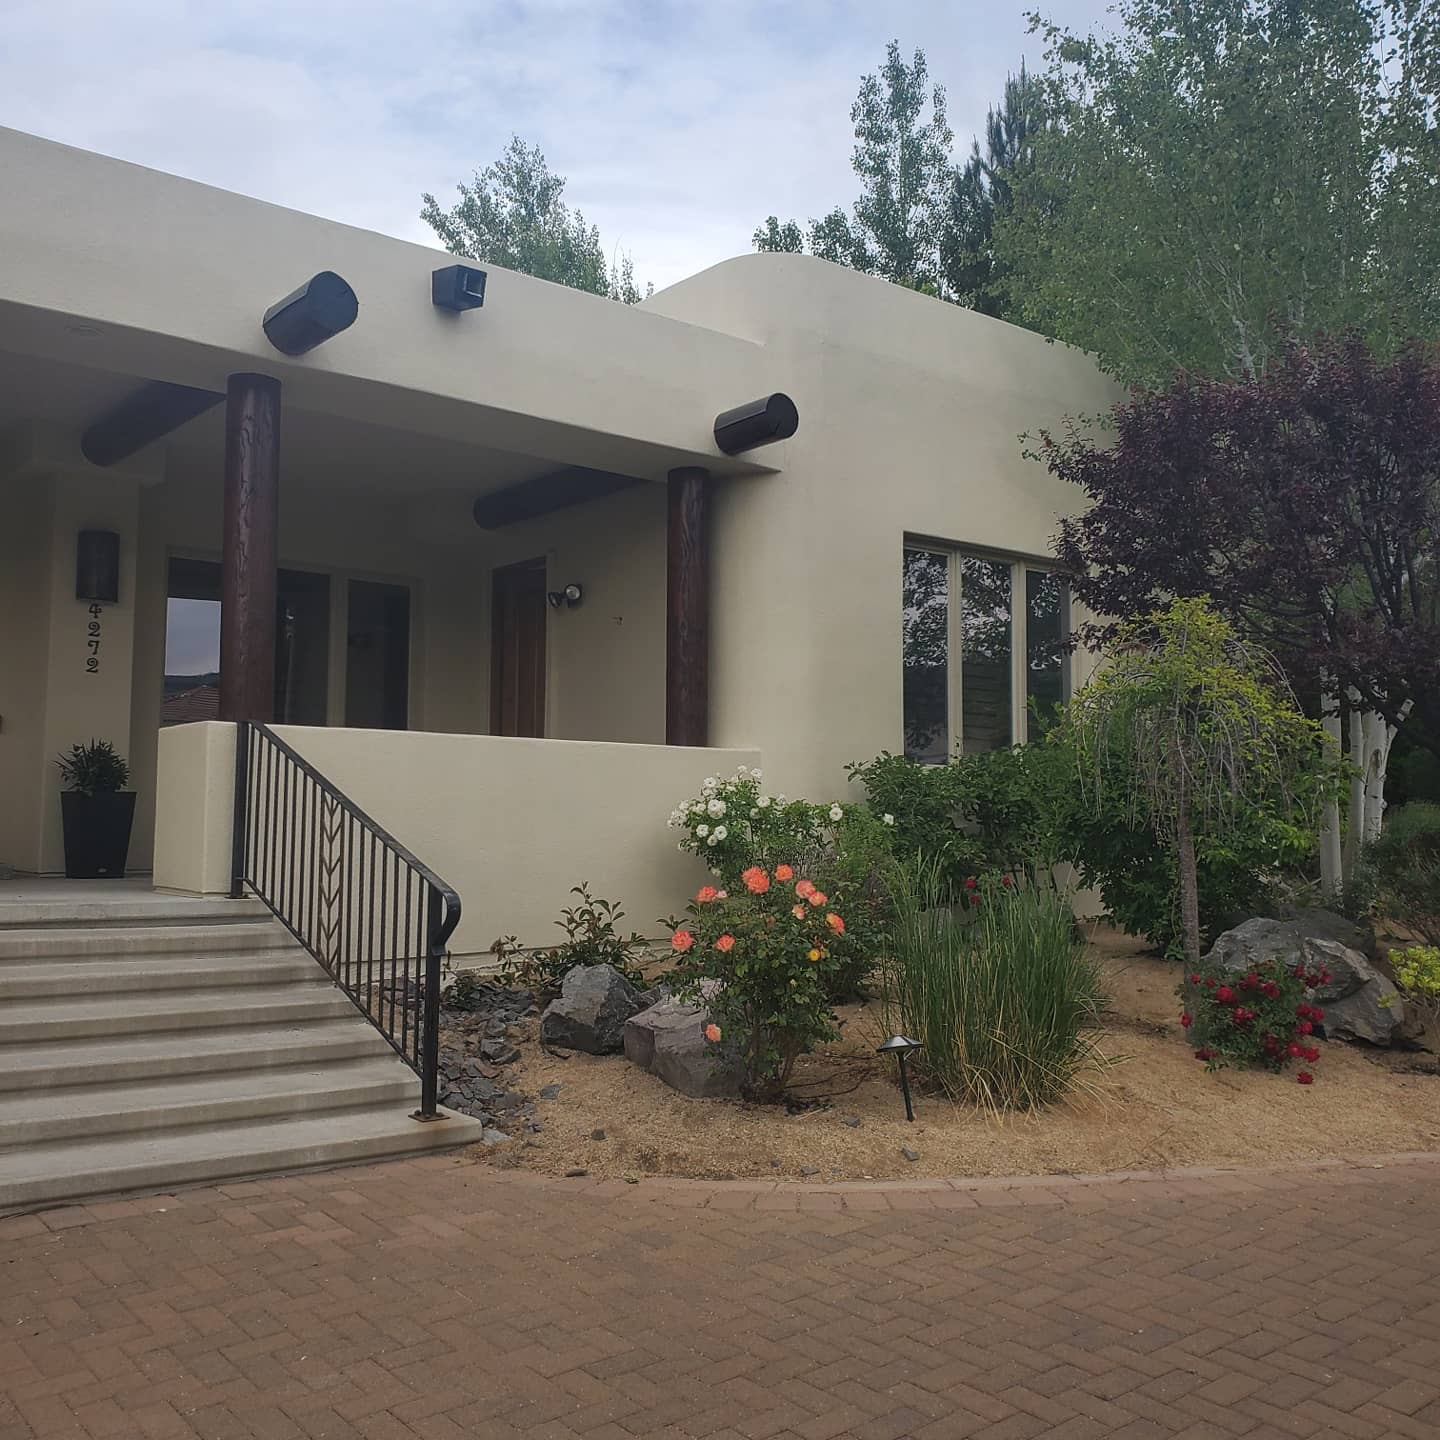 DB PAINTING RESIDENTIAL & COMMERCIAL, Reno Nevada, Interior and Exterior Painting,Drywall,Stain Painting, Stucco Repair, Power Washing, Finishes,Texture Repair (13)